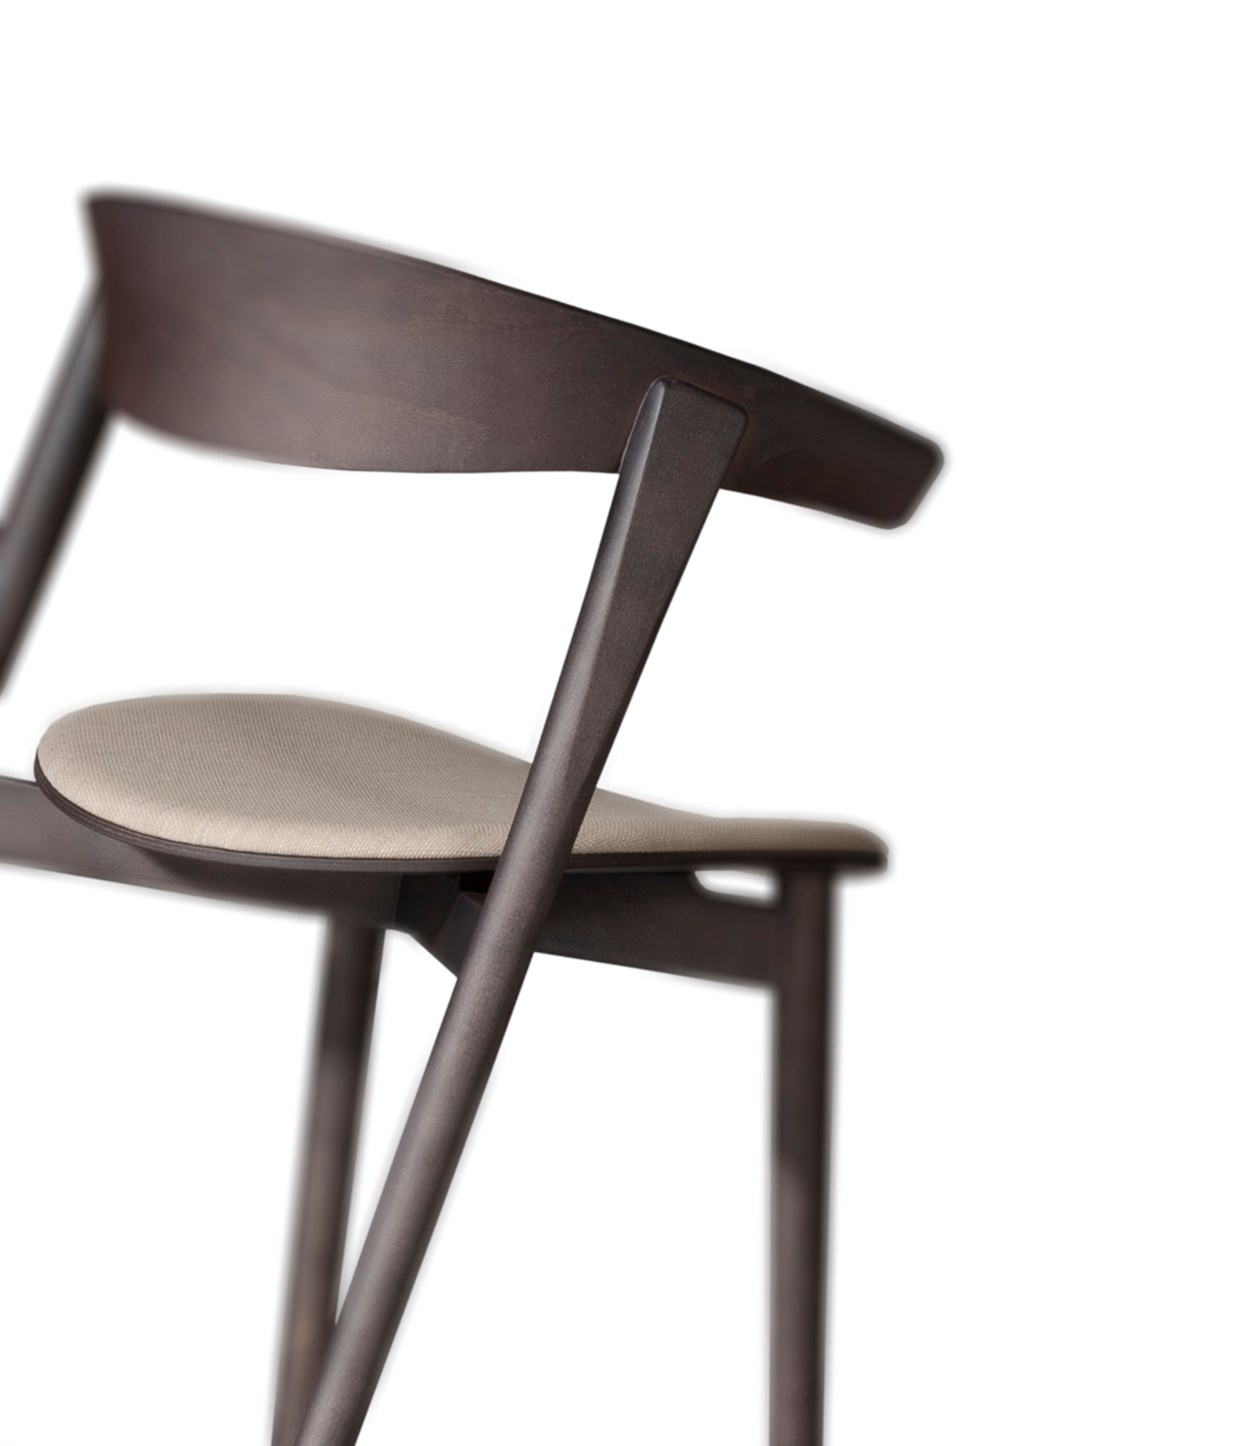 Capdell-NIX-chair-back.jpg